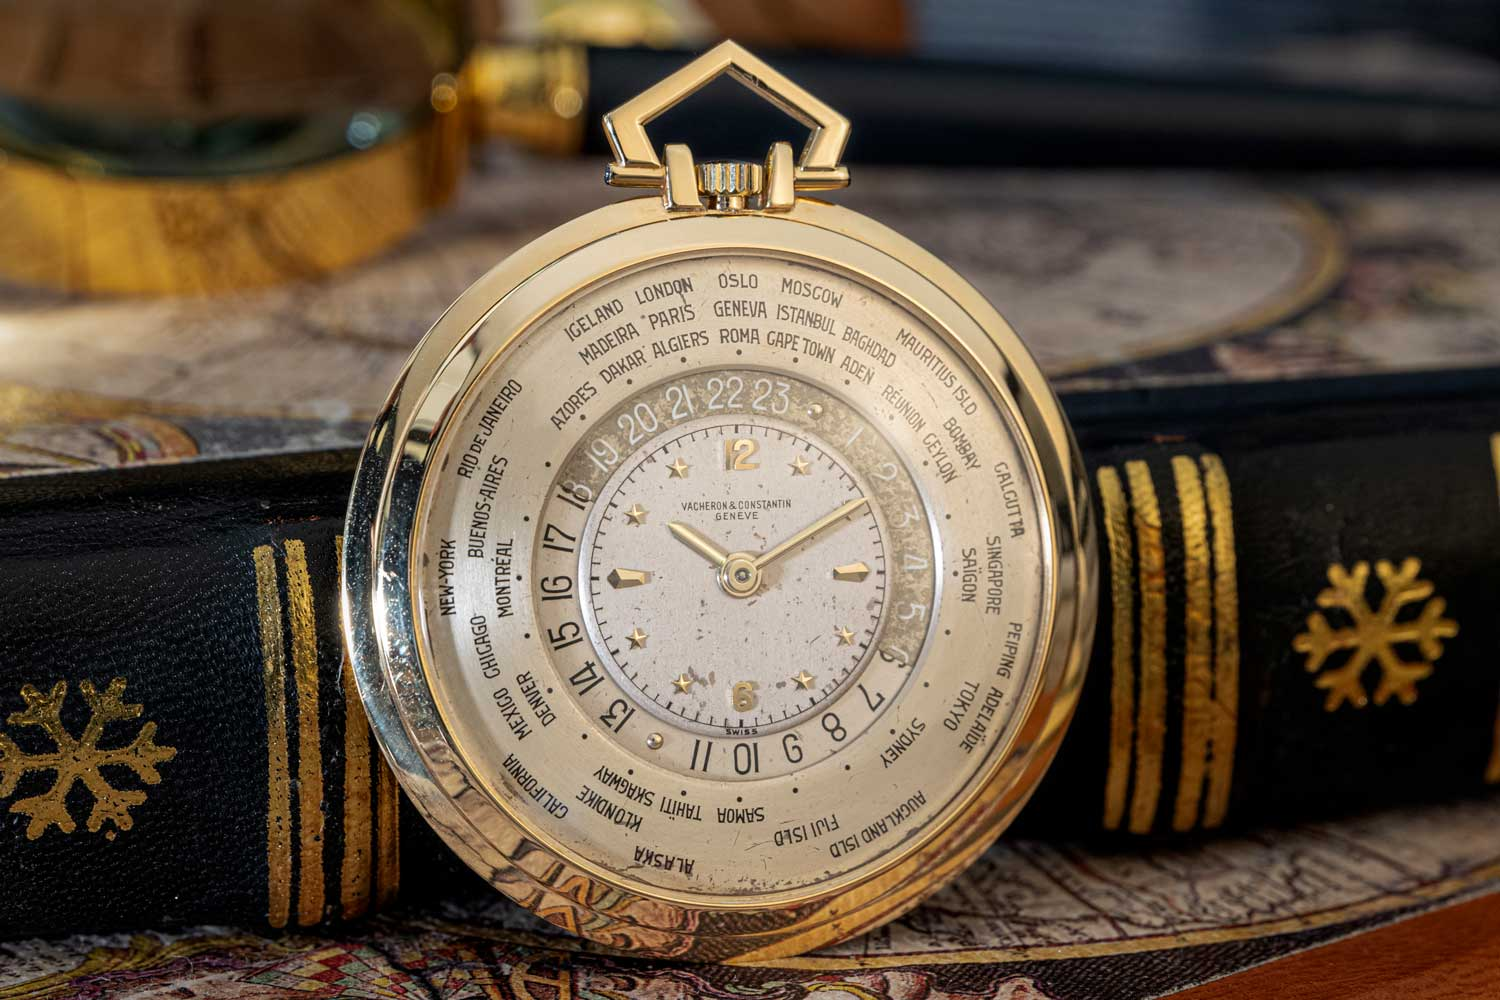 1949: Reference 4414 Heure Universelle Pocket Watch; 18K yellow gold open-face worldtime pocket watch; silvered dial made in 3 parts; 24-hour disk divided in two zones, dark blue zone for the night hours and silvered for the daylight hours; external fixed disk graduated with the name of 41 cities and places (©Revolution)